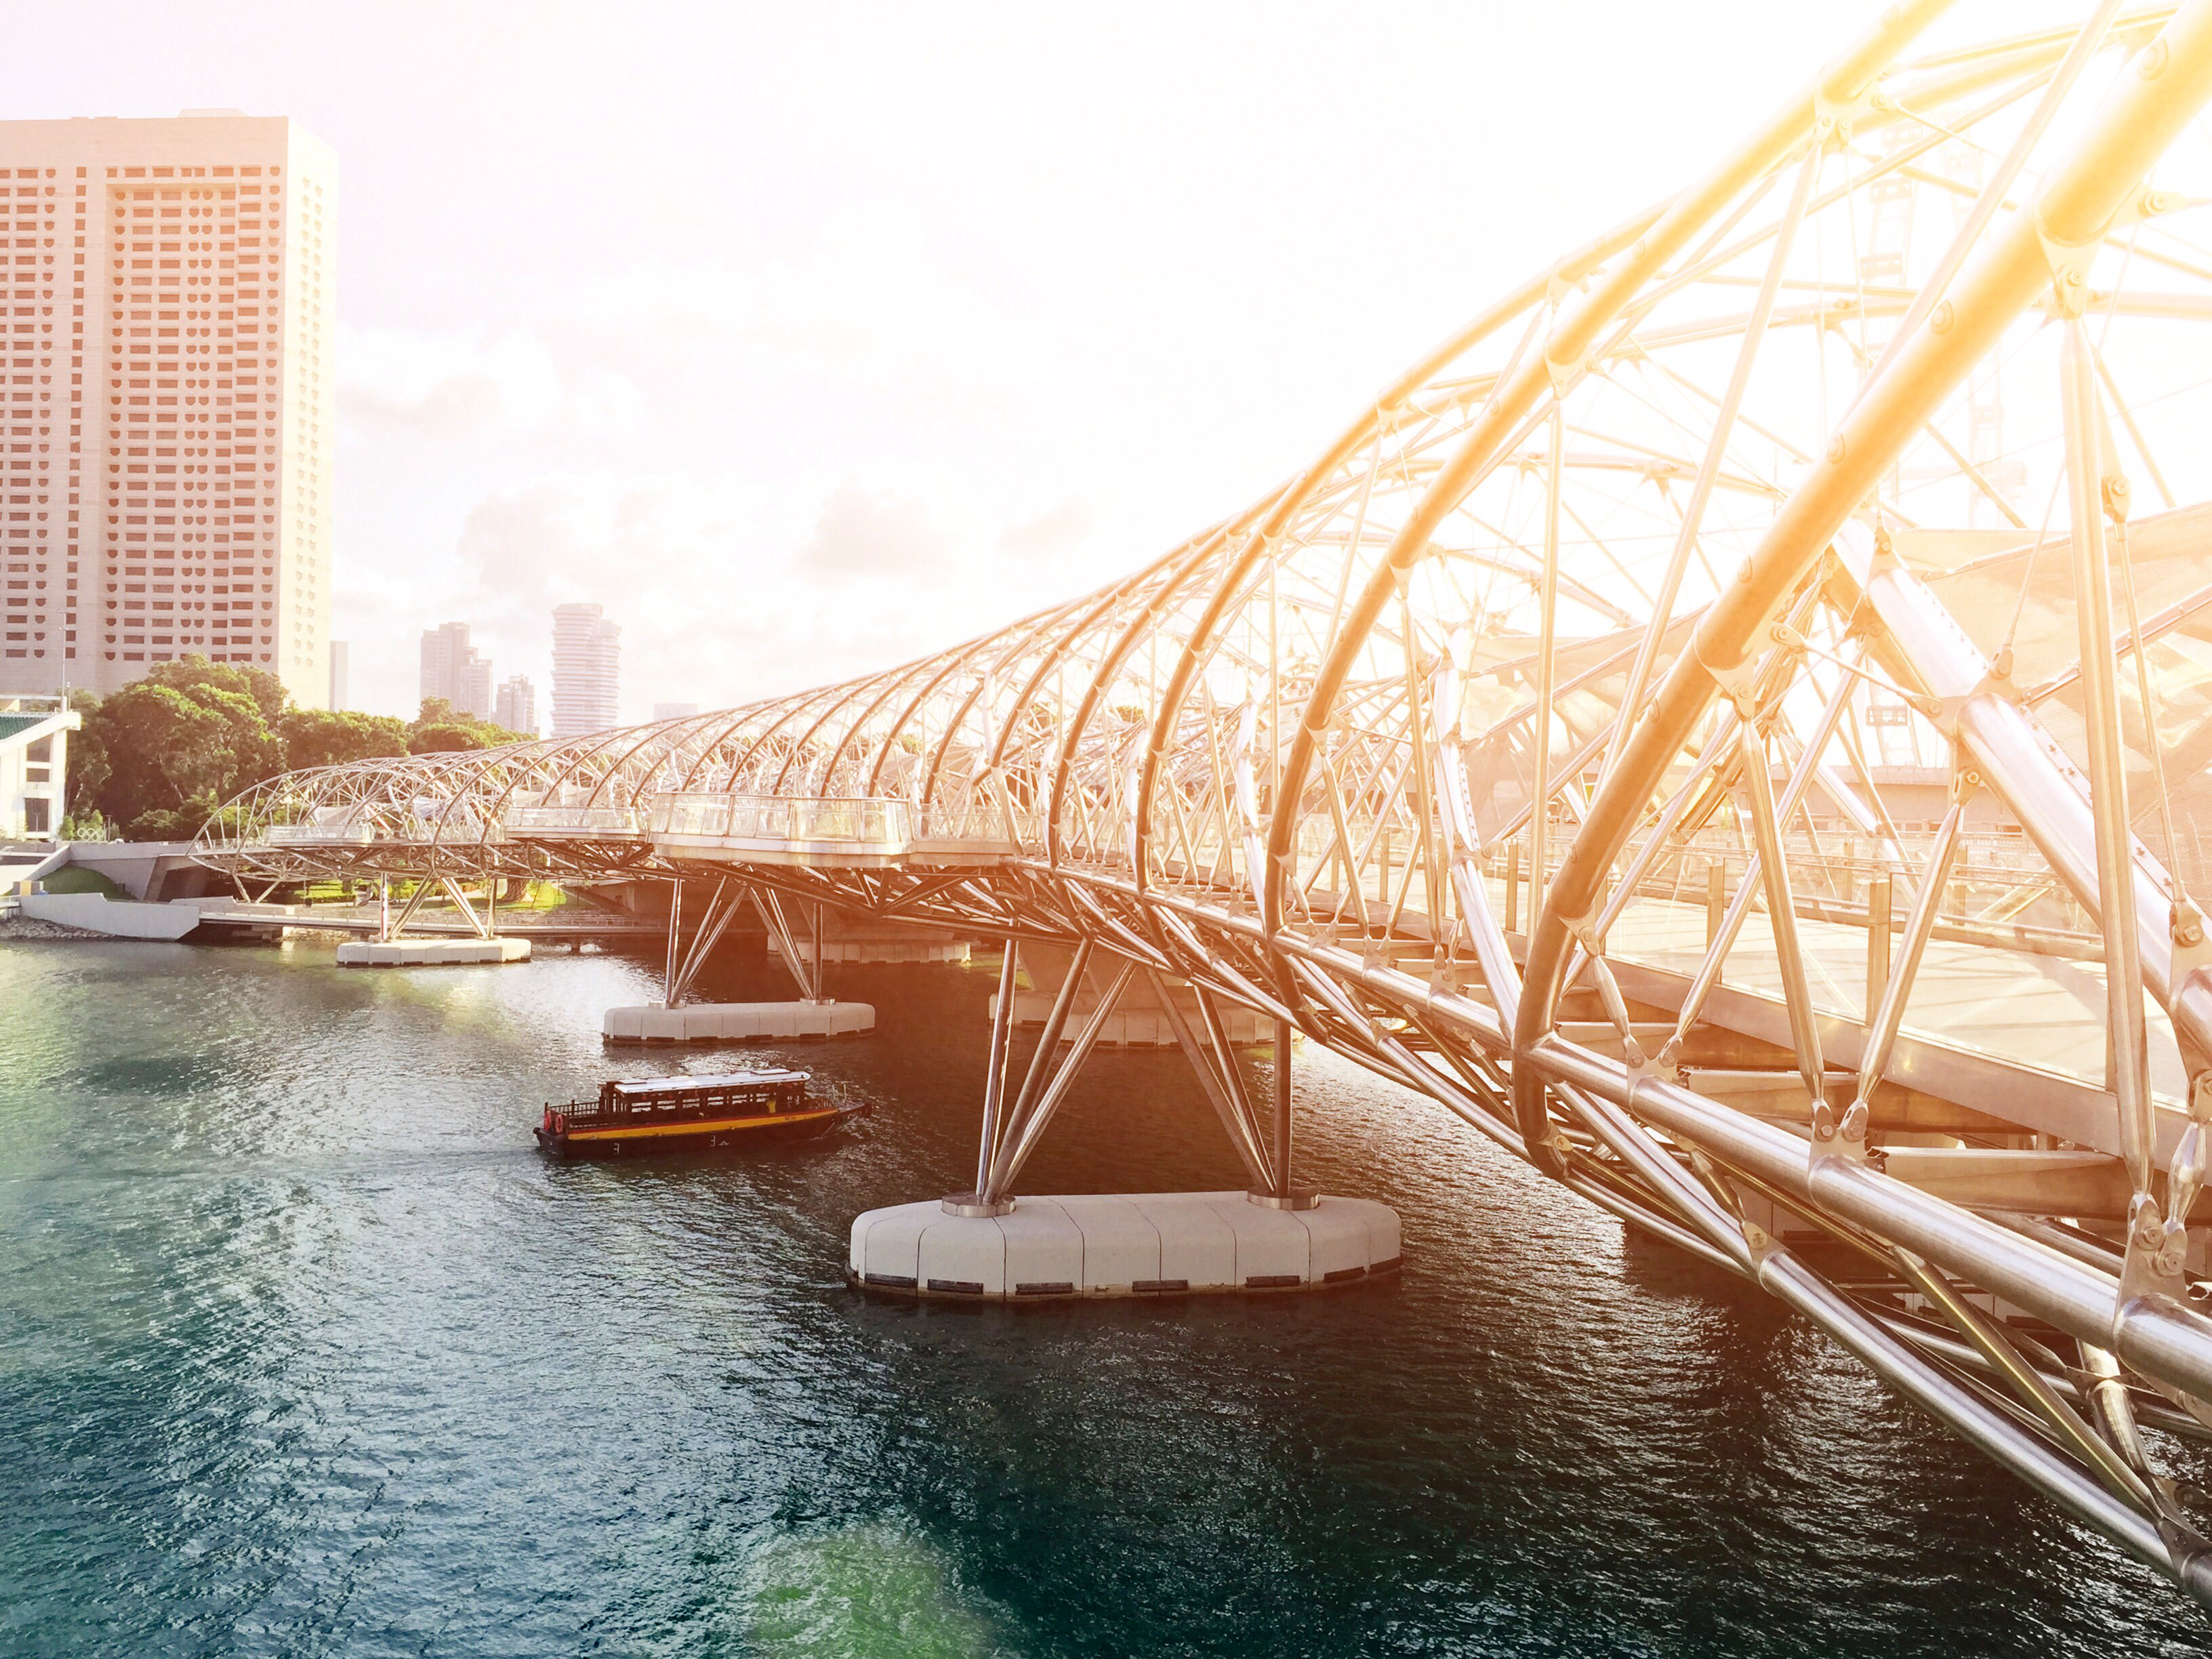 Full Hd Wallpaper Search Bridge Architecture In Singapore Under The Sunlight Image